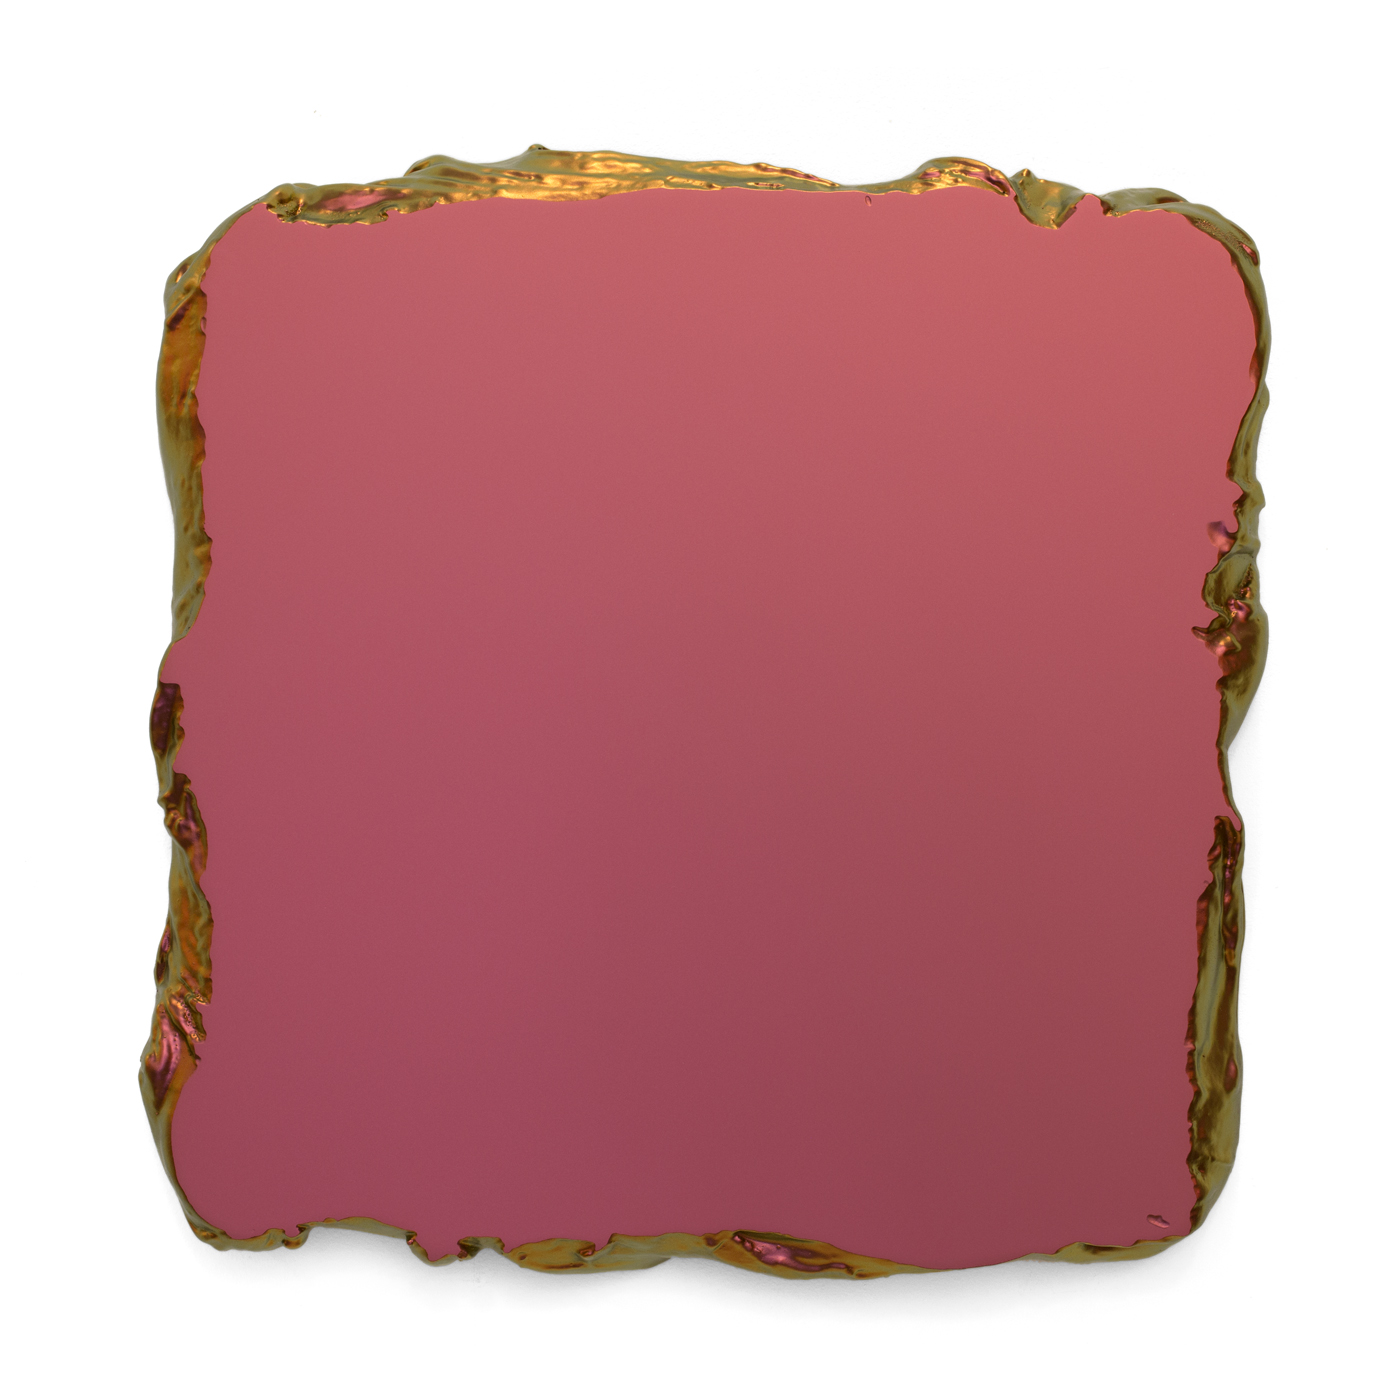 Juri Markkula Red to Gold 50x50cm Interference pigment, polyurethan